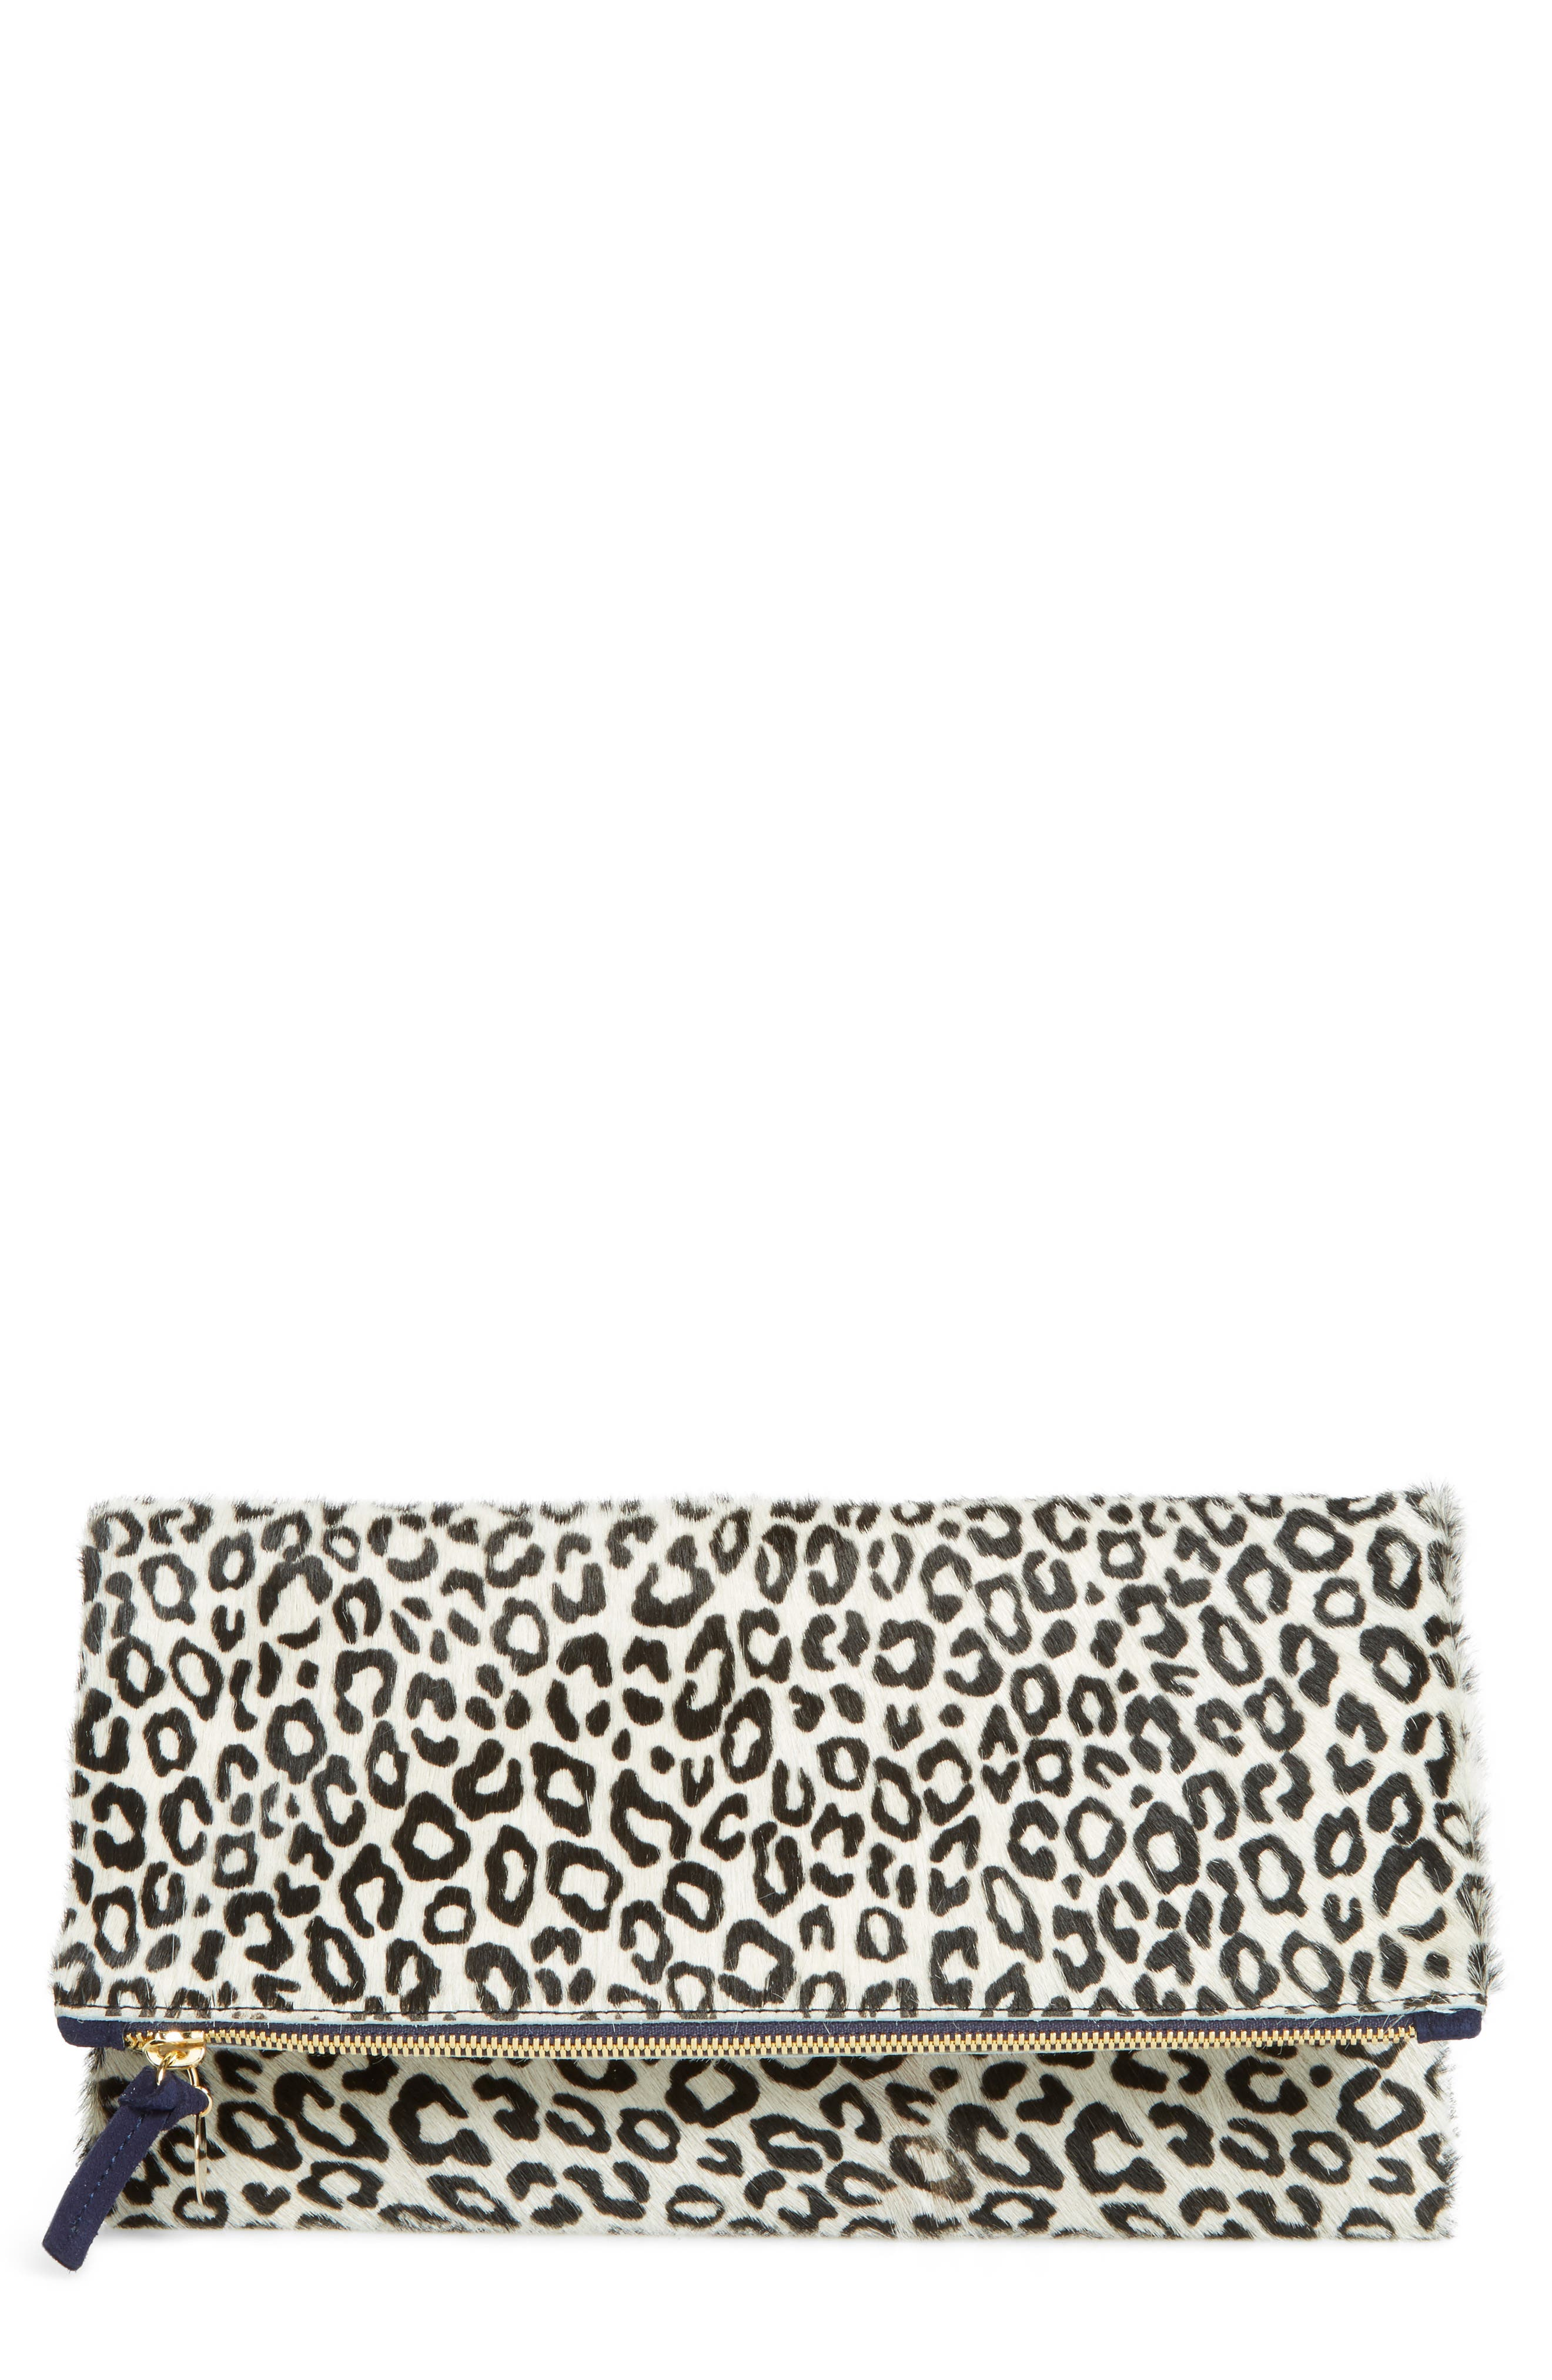 Clare V. Ocelot Print Genuine Calf Hair Foldover Clutch